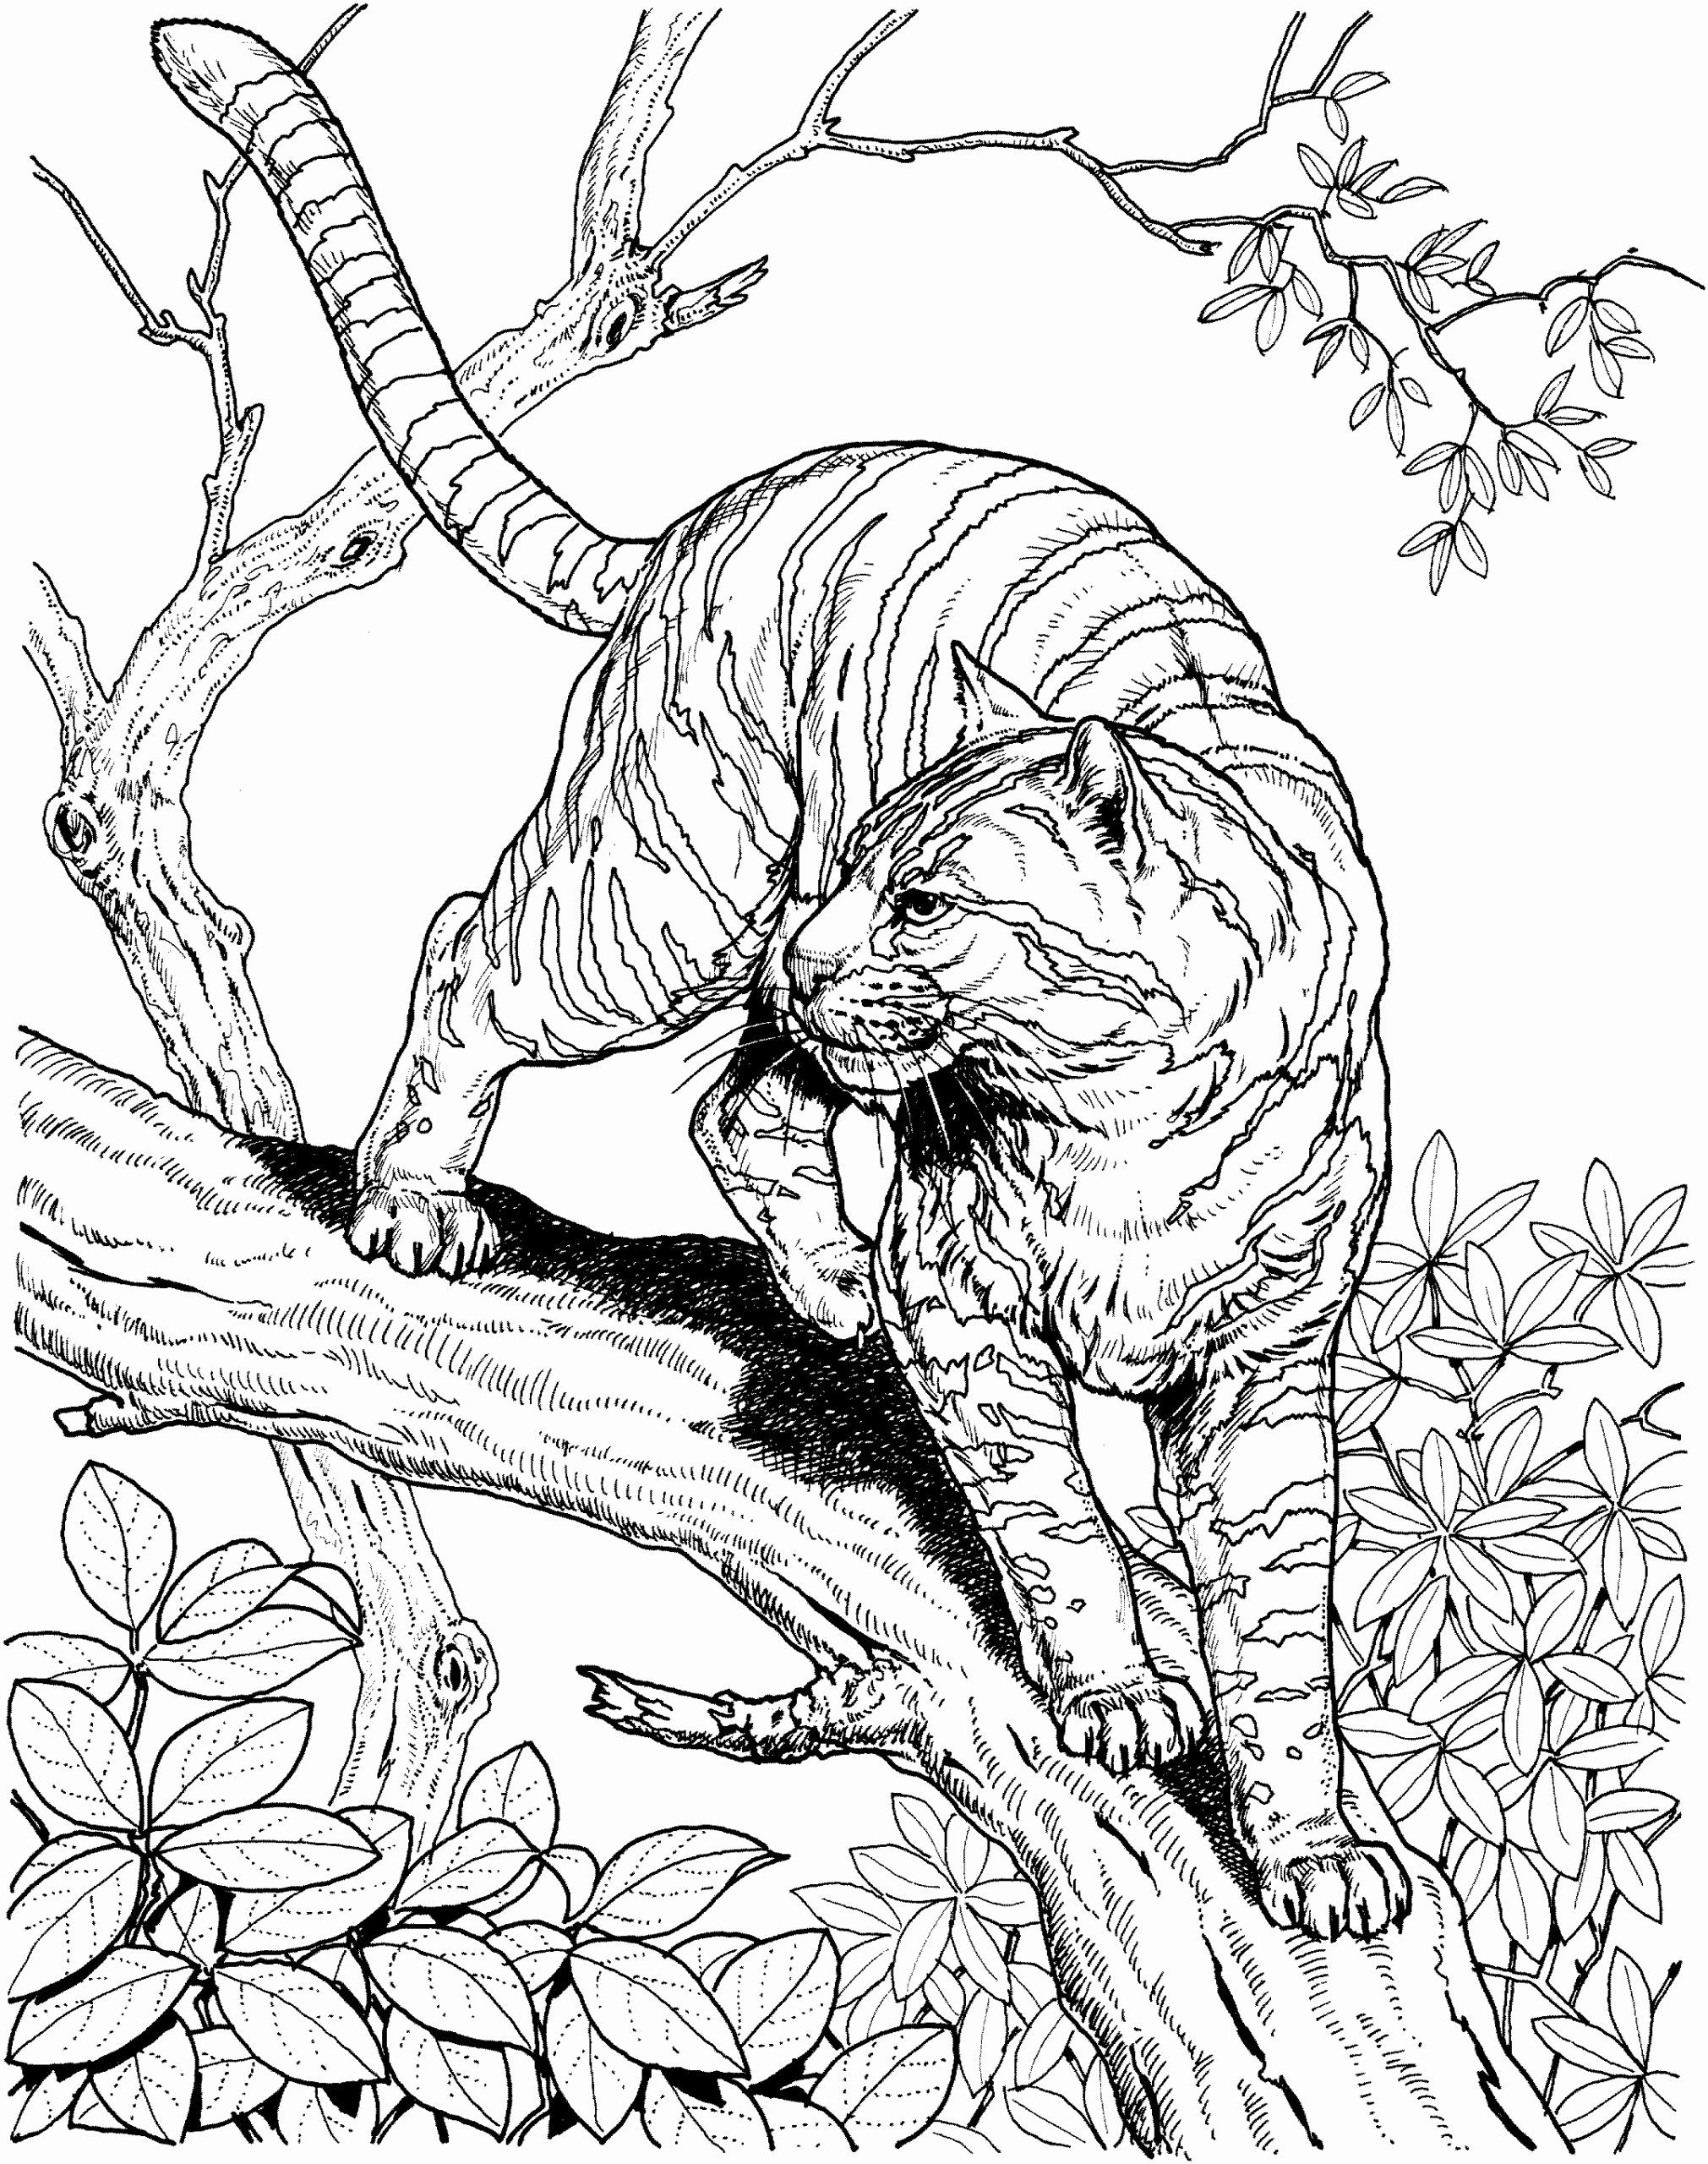 Difficult Coloring Pages Of Animals Elegant Coloring Pages Animals Hard In 2020 Zoo Animal Coloring Pages Animal Coloring Books Jungle Coloring Pages